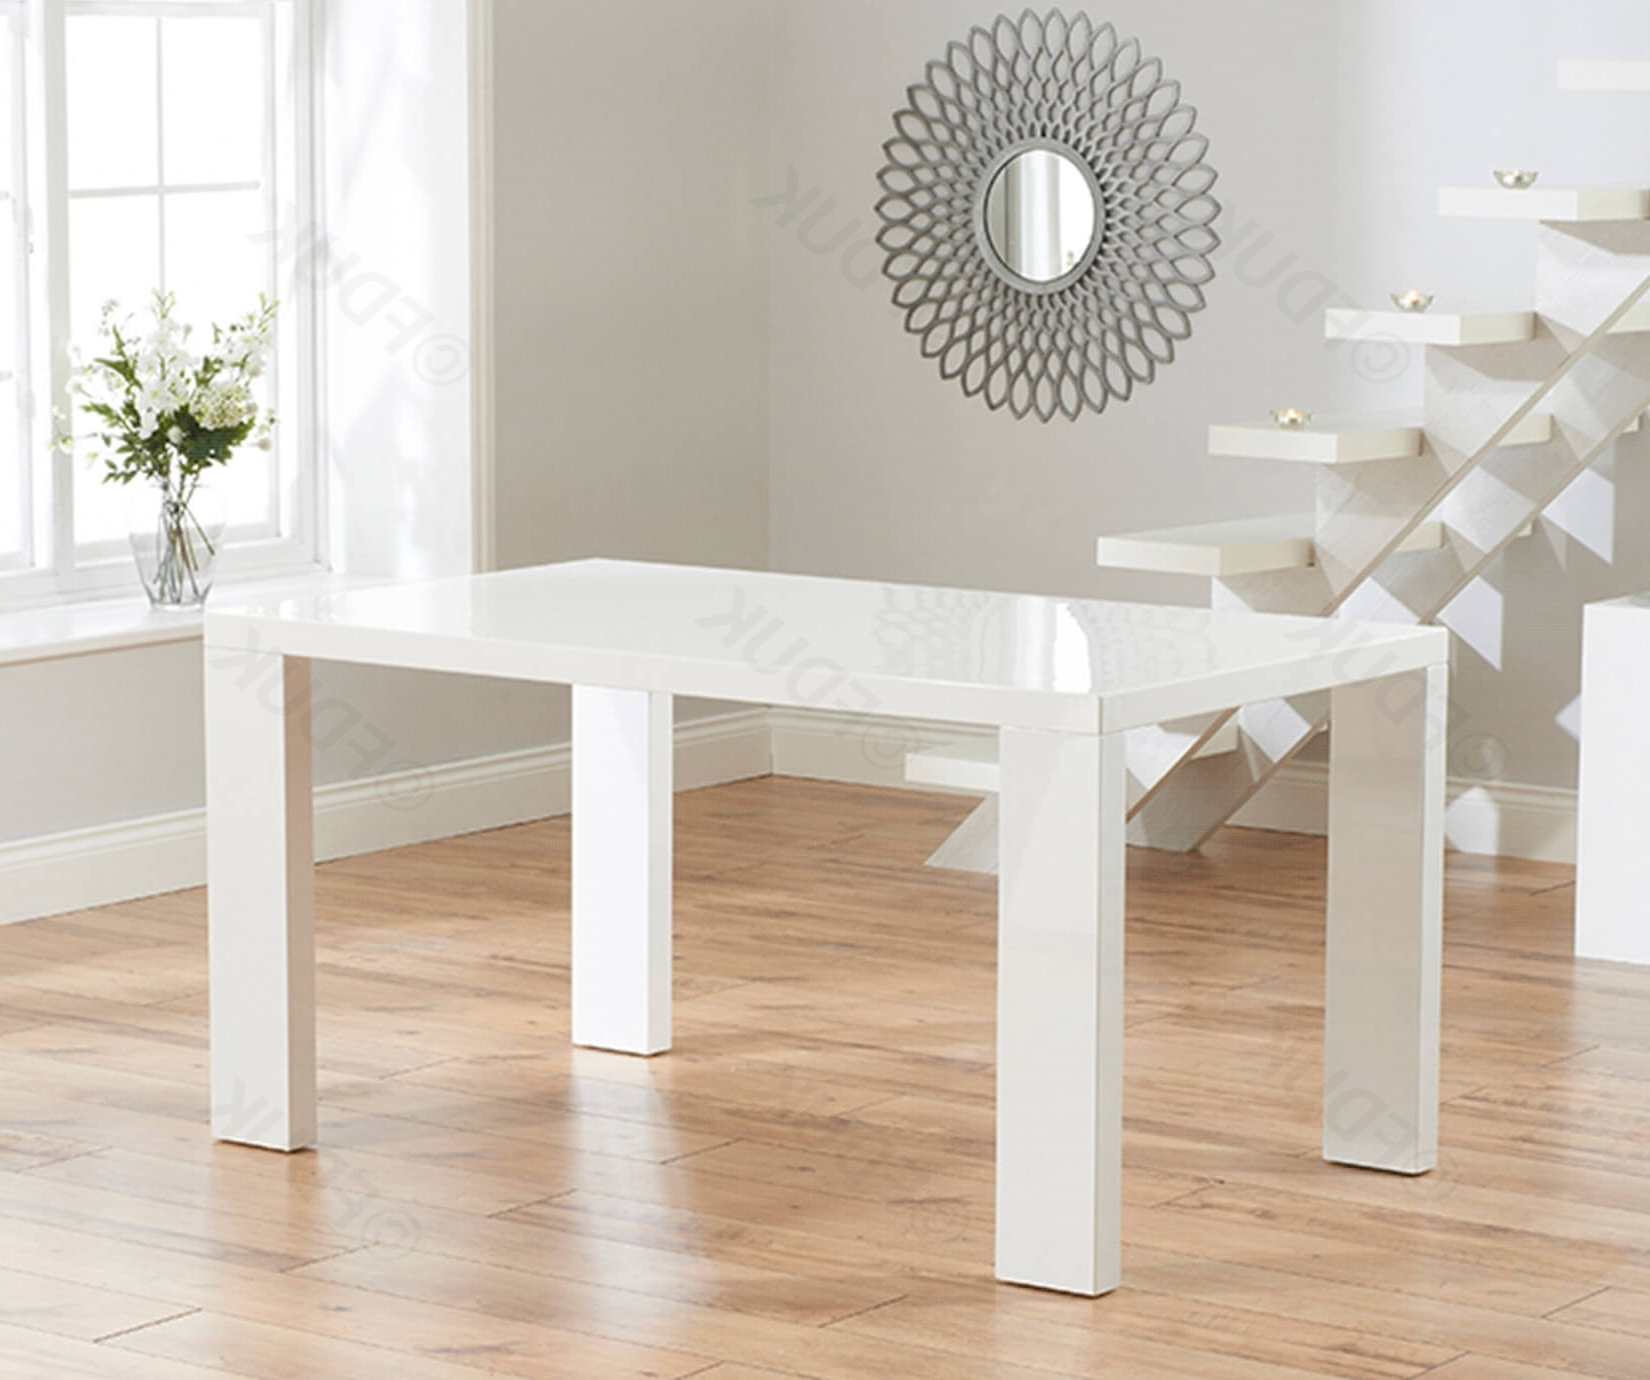 Metz 150Cm White High Gloss Dining Table Inside Latest White Gloss Dining Furniture (View 3 of 25)